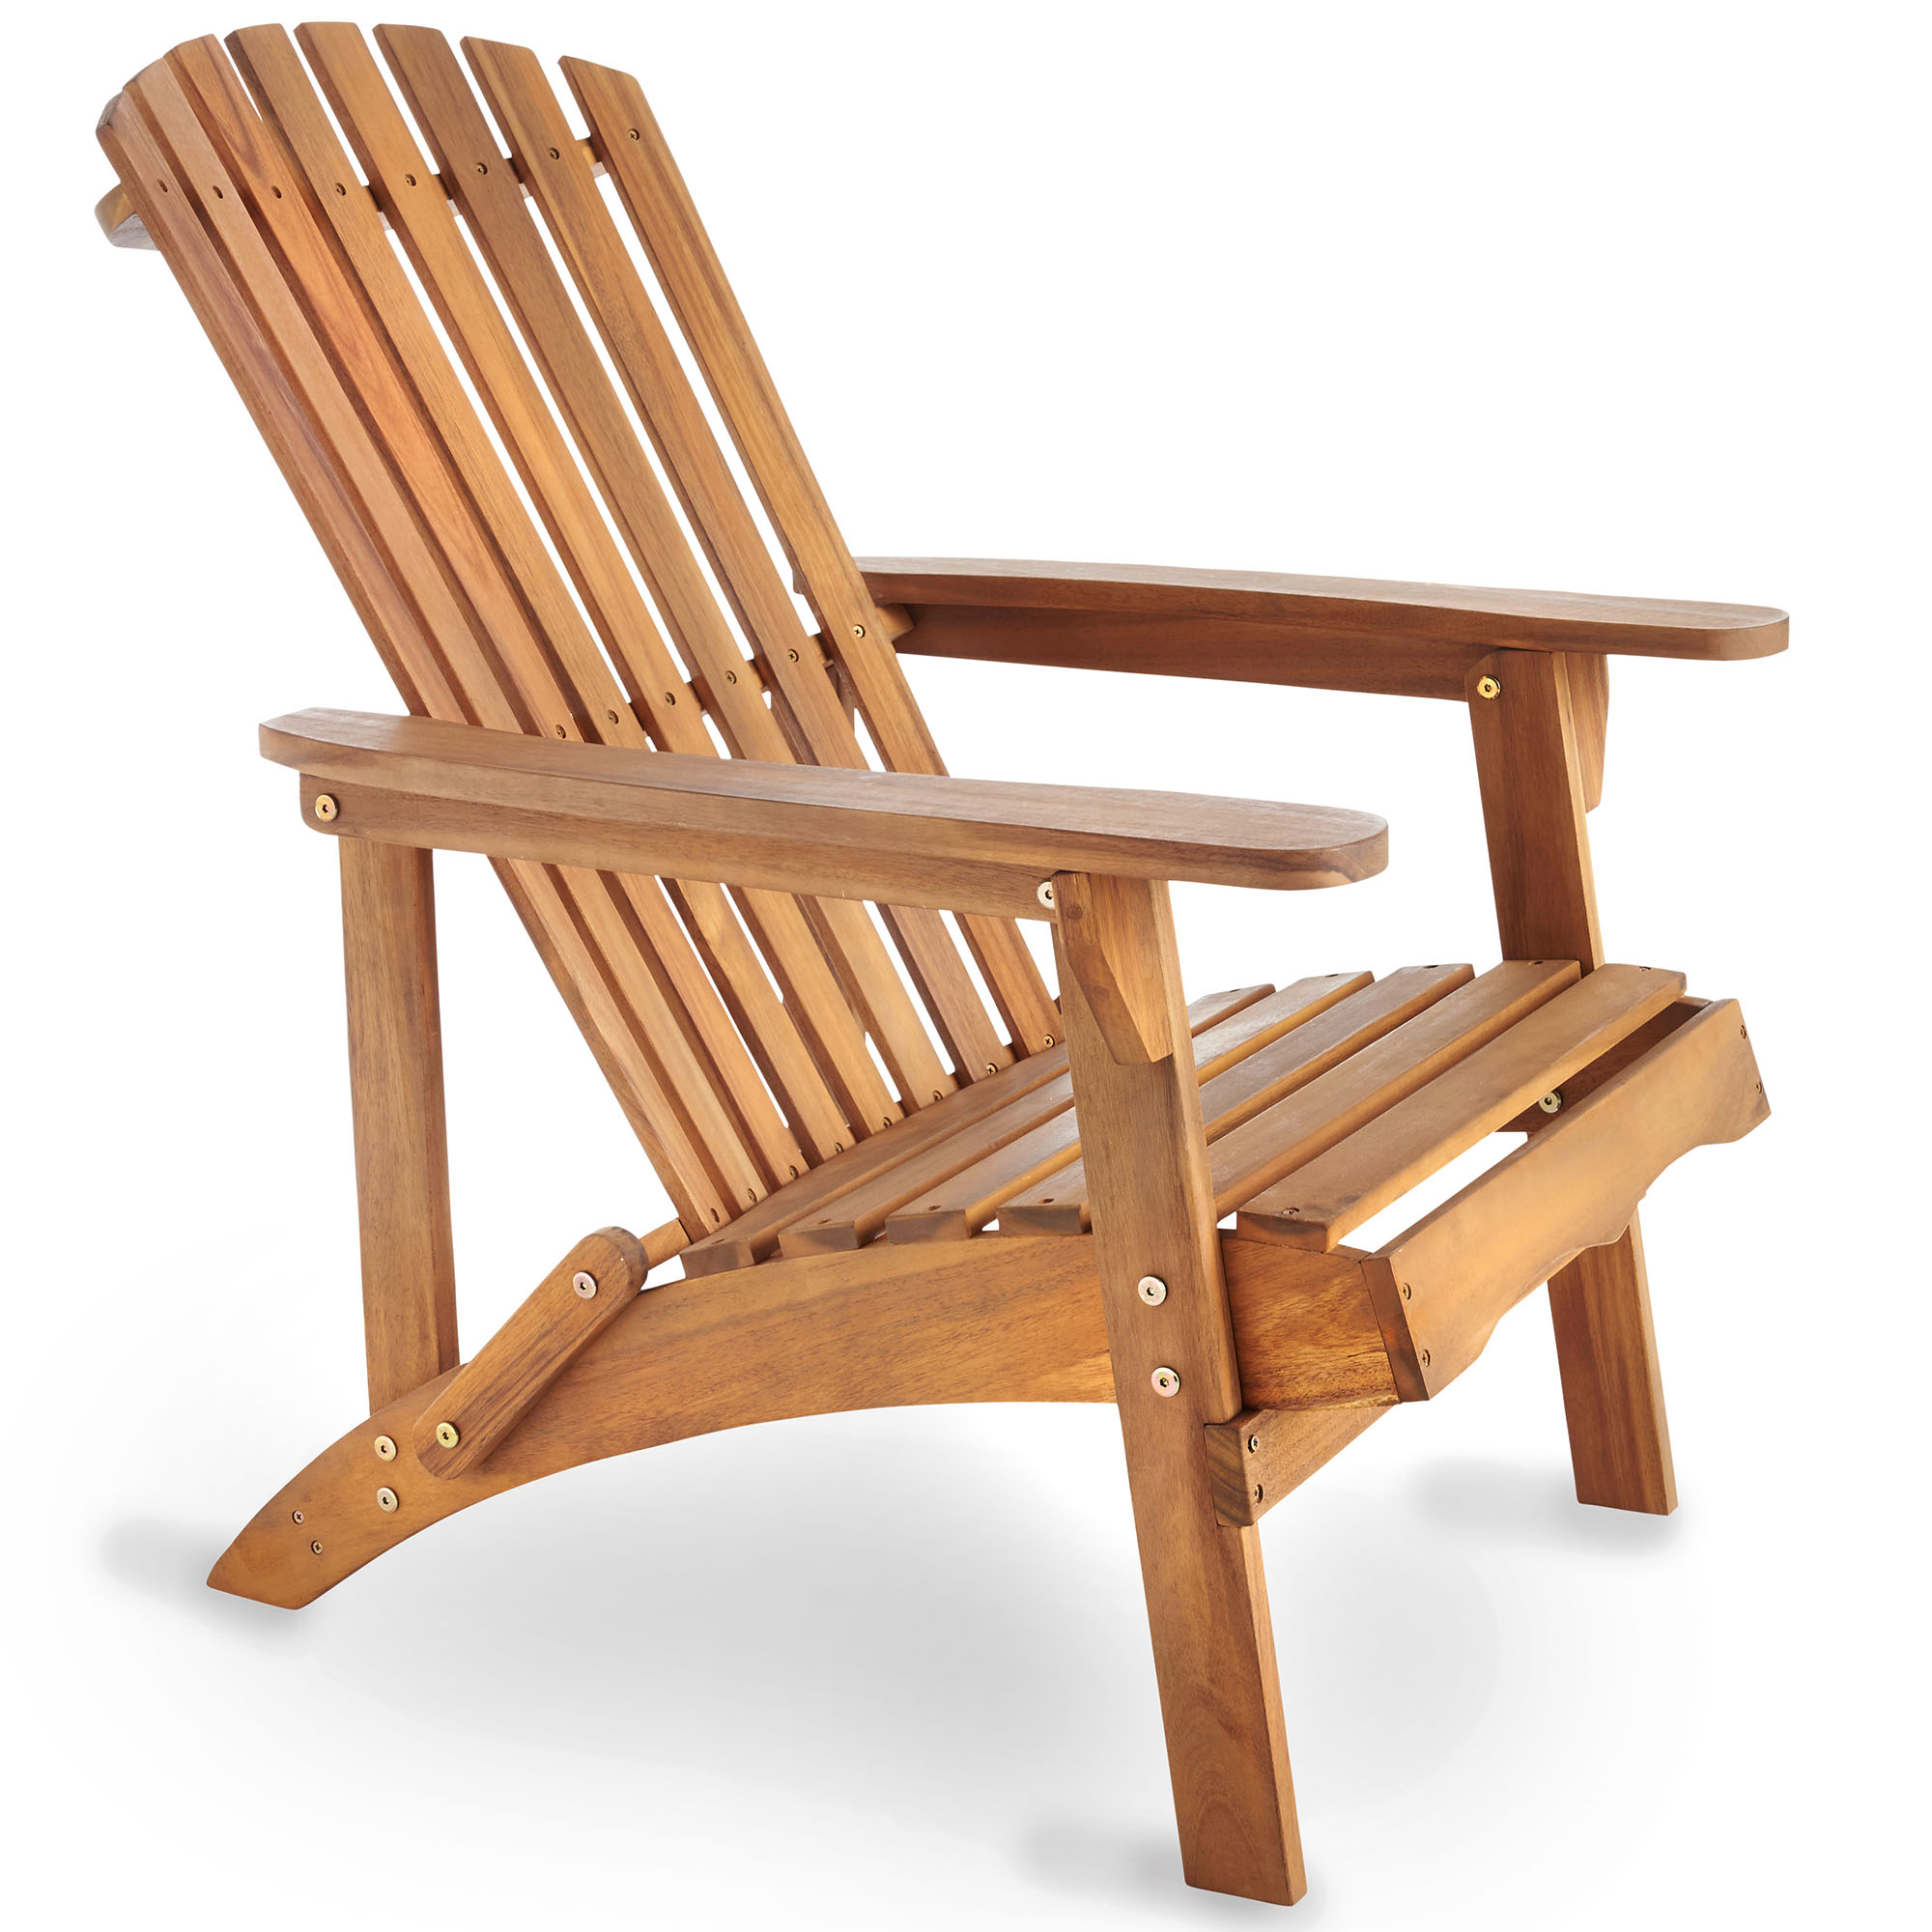 Wooden Lawn Chairs ~ Vonhaus adirondack chair outdoor garden patio pool balcony